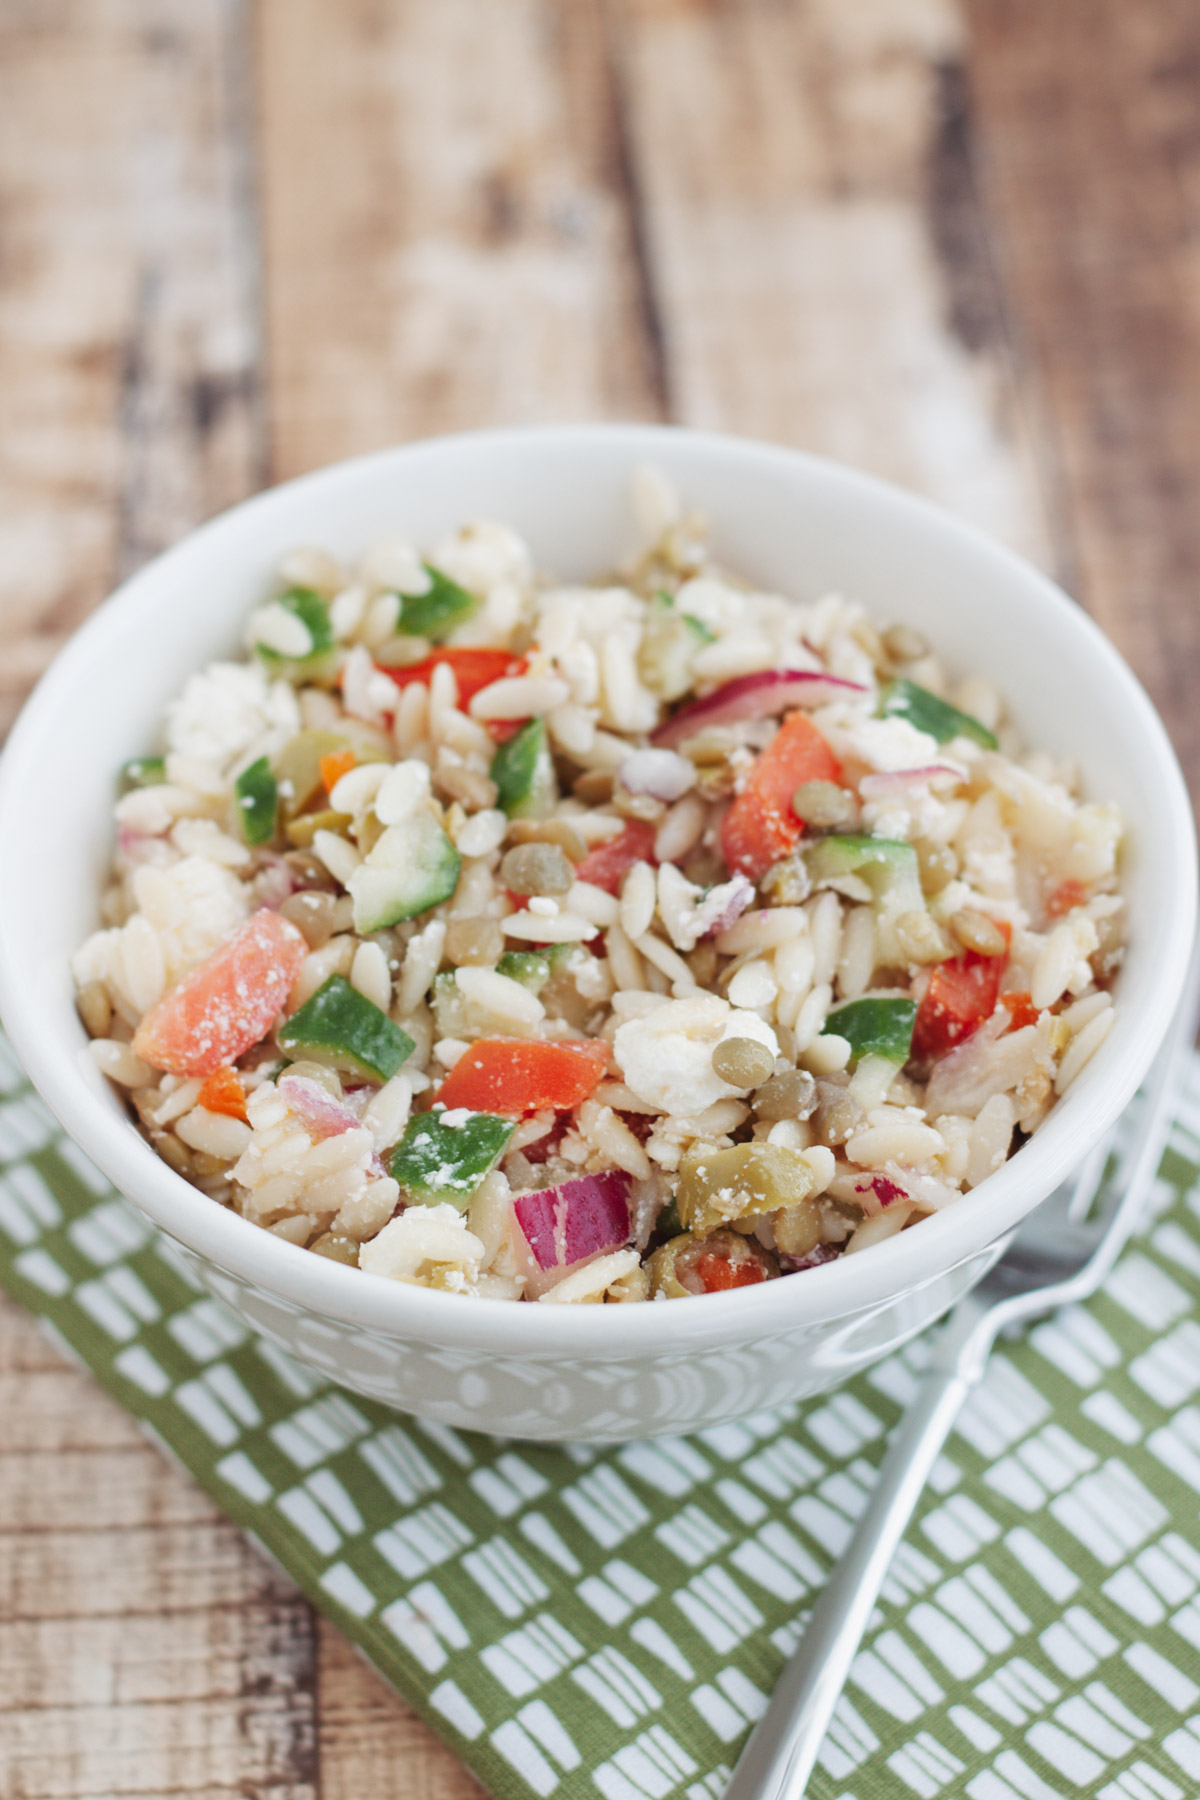 White bowl of Greek Orzo Salad with Lentils and fresh tomatoe and cucumbers in a white bowl on a green and white napkin.